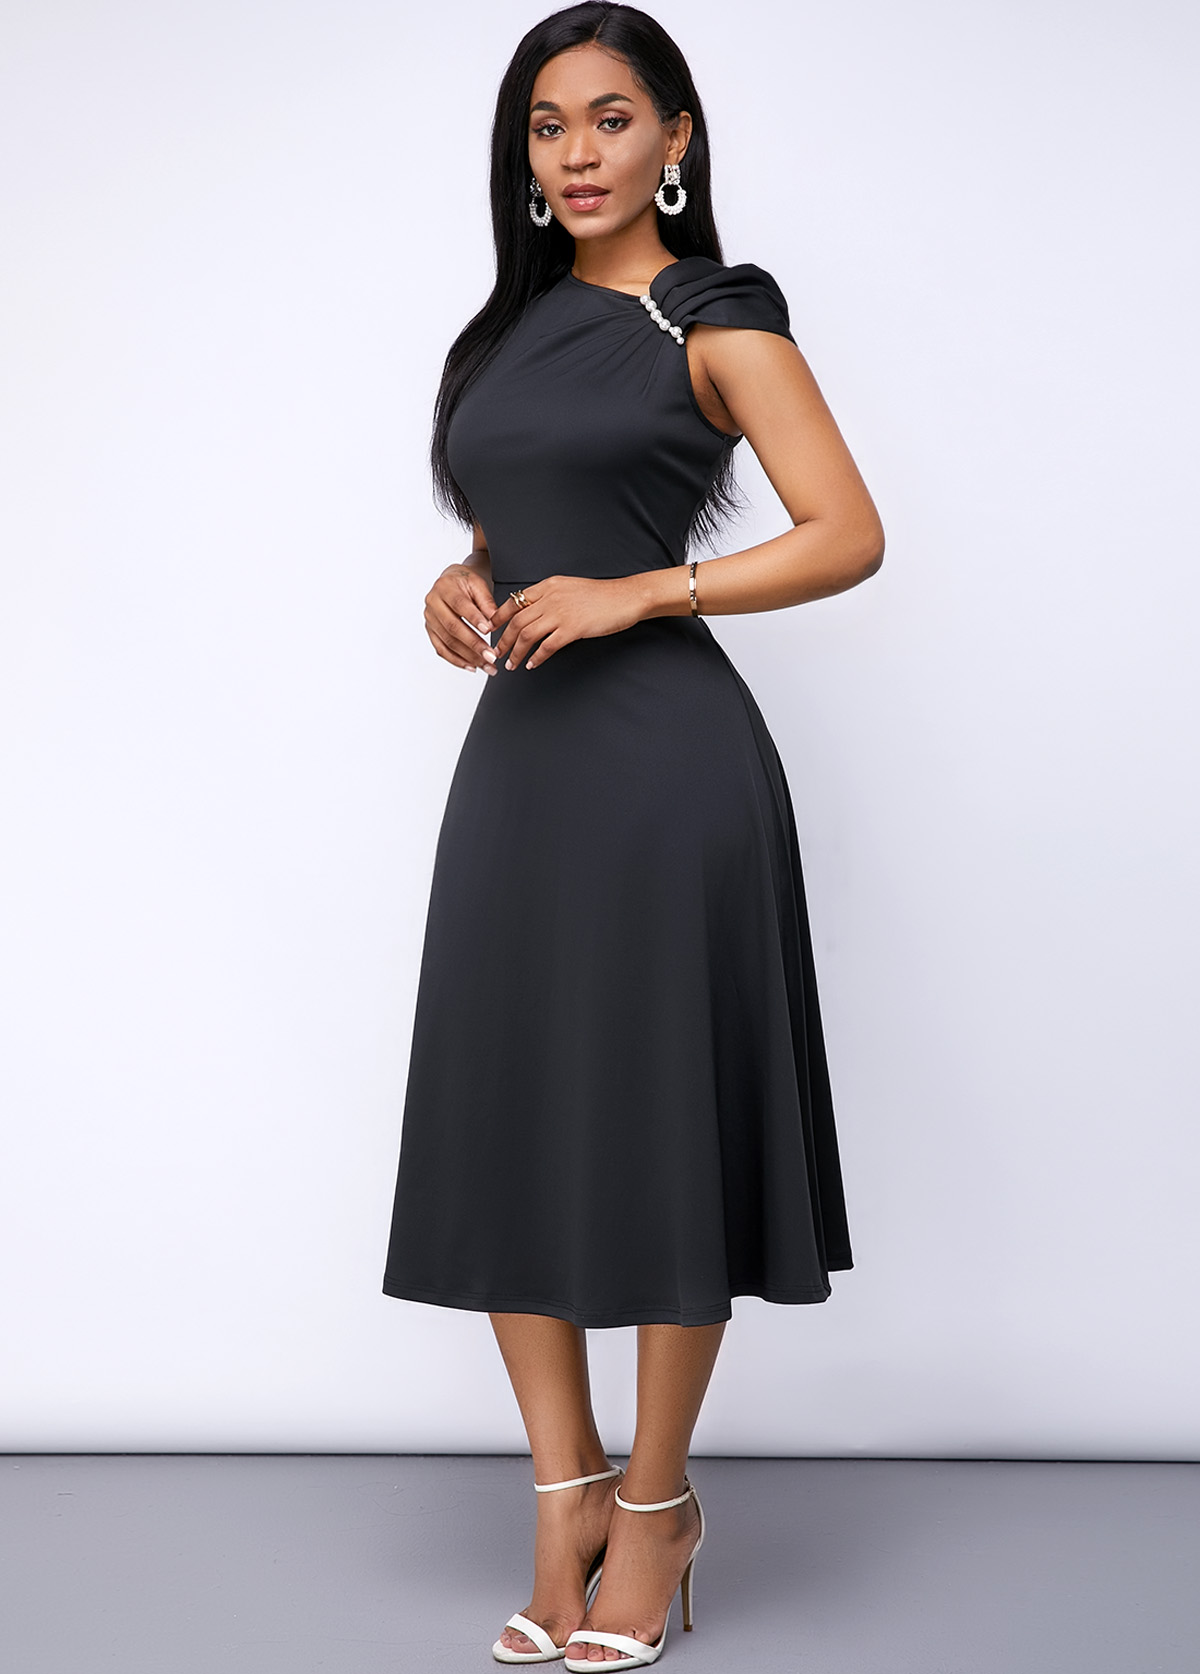 Shirred Shoulder Cap Sleeve Black Dress